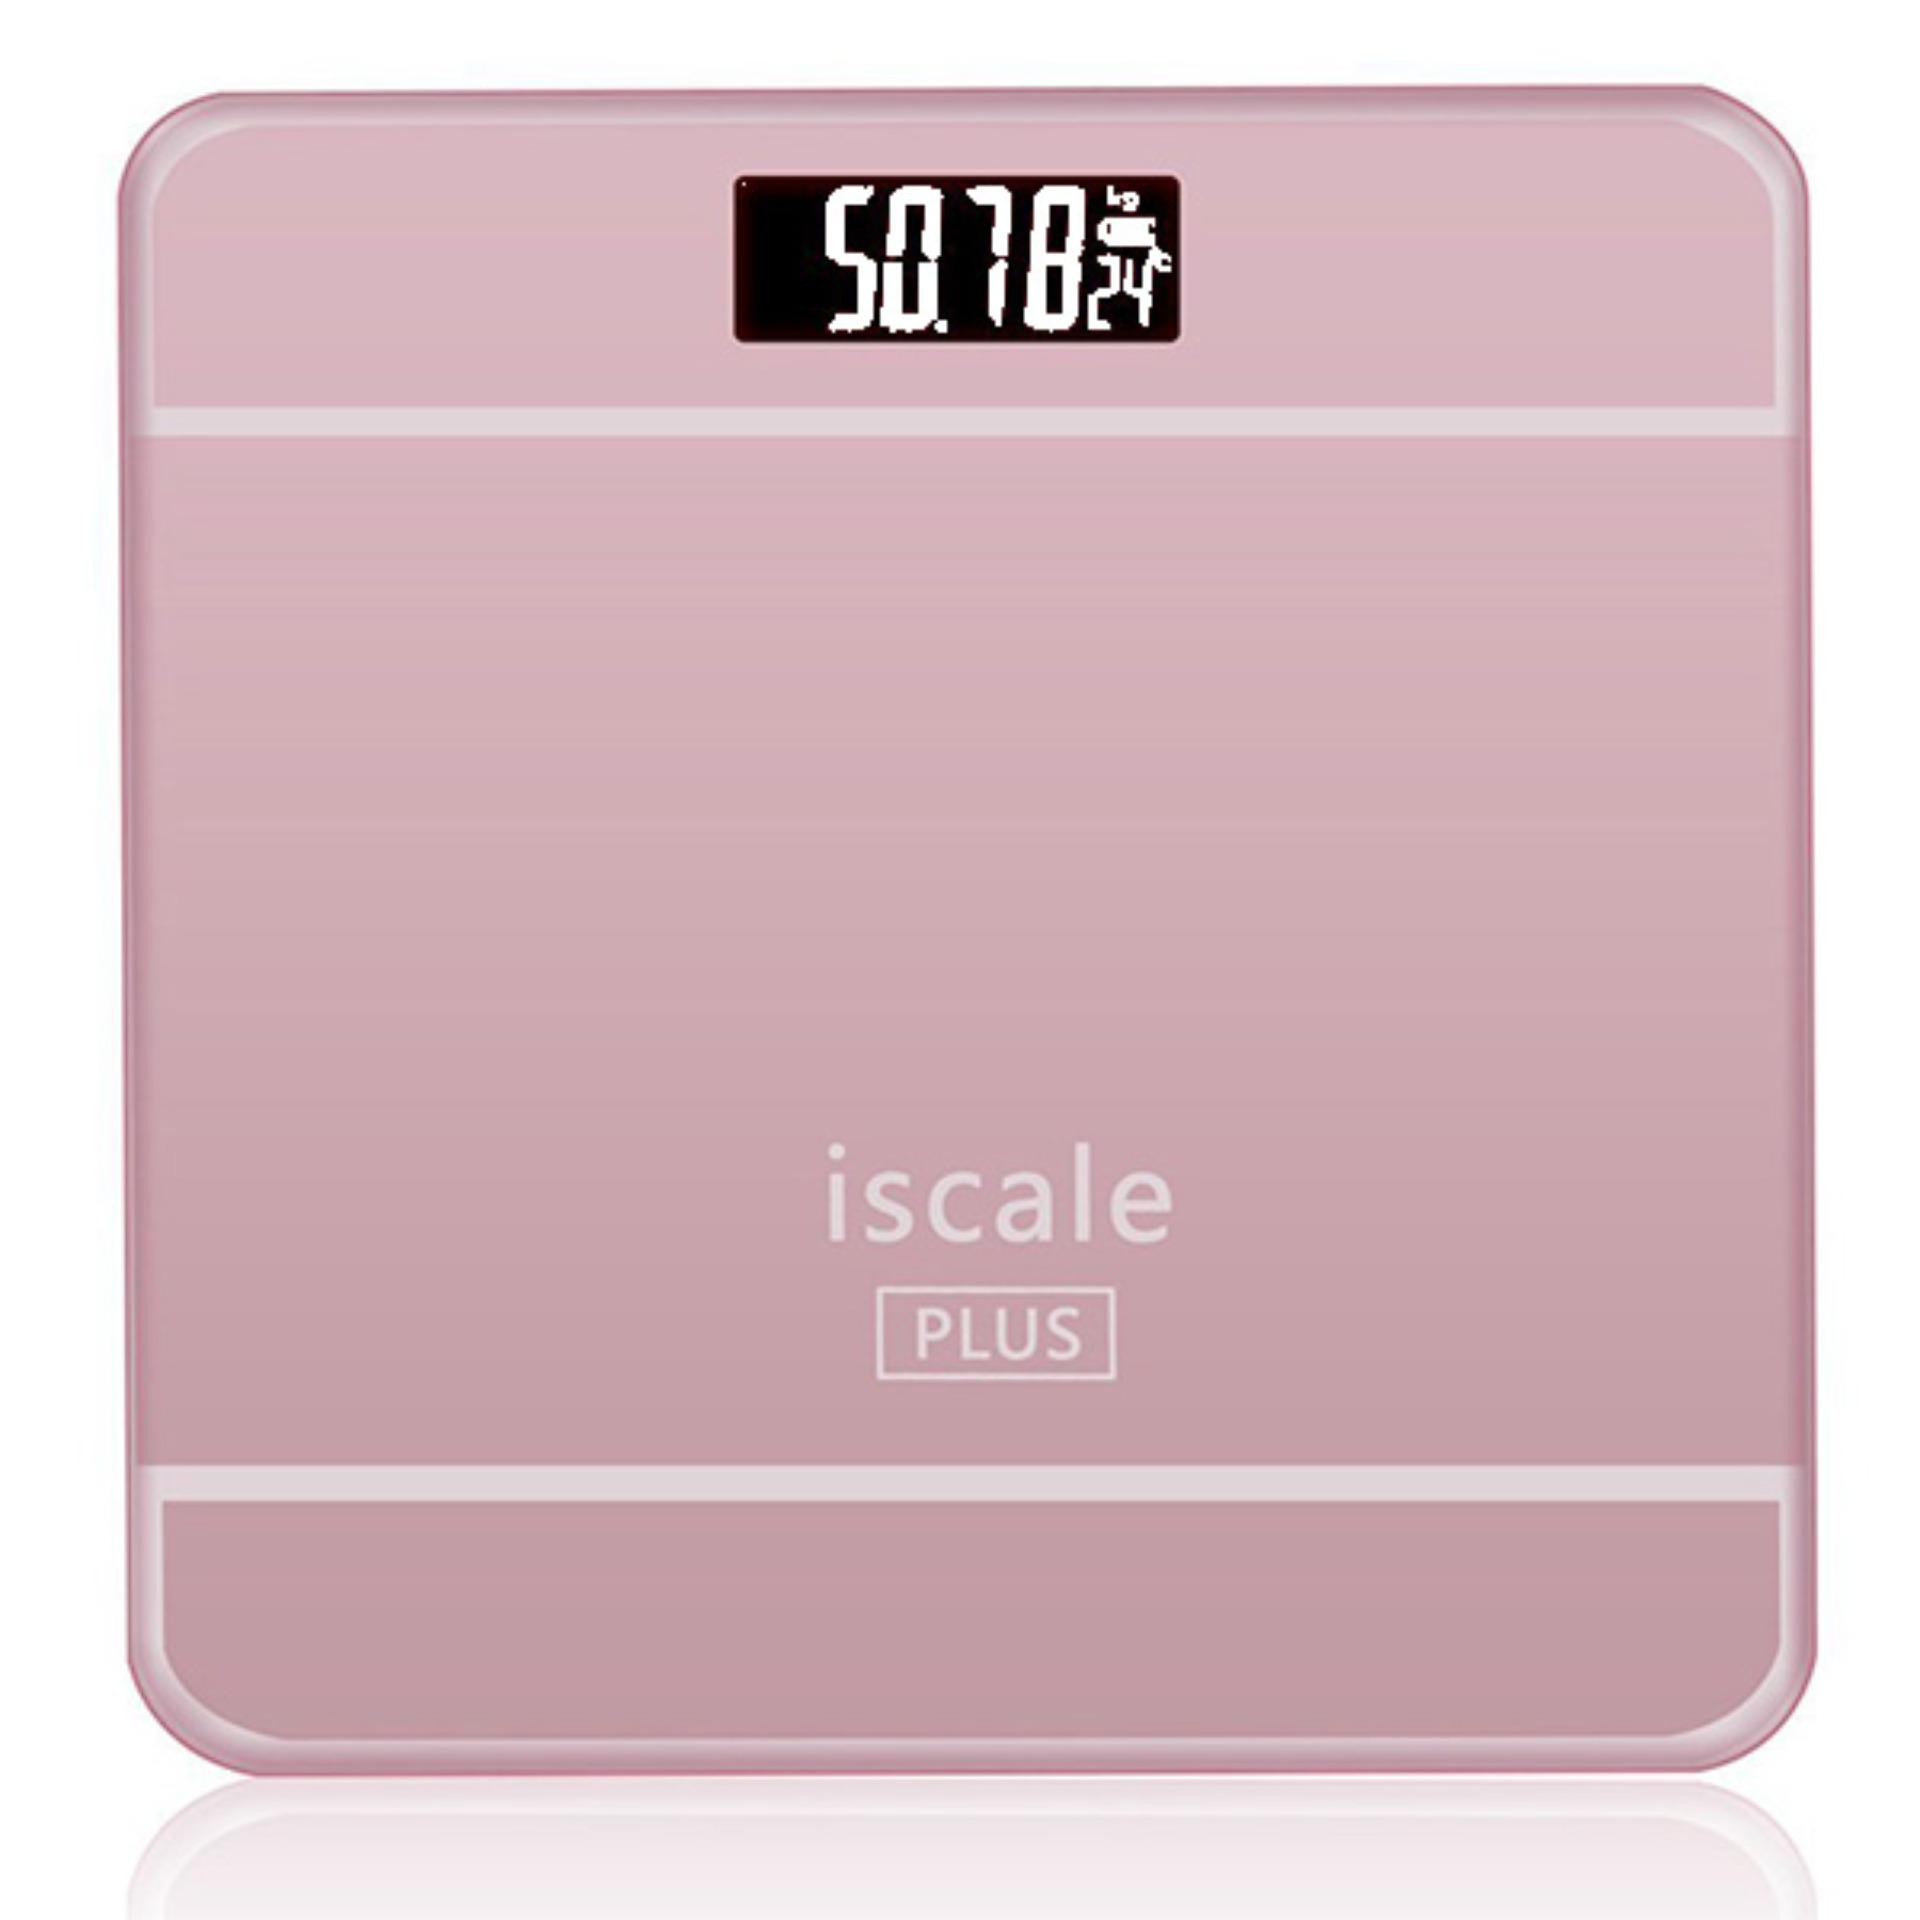 Dimana Beli Timbangan Badan Digital With Temperature Indicator Iscale Plus Pink Oem